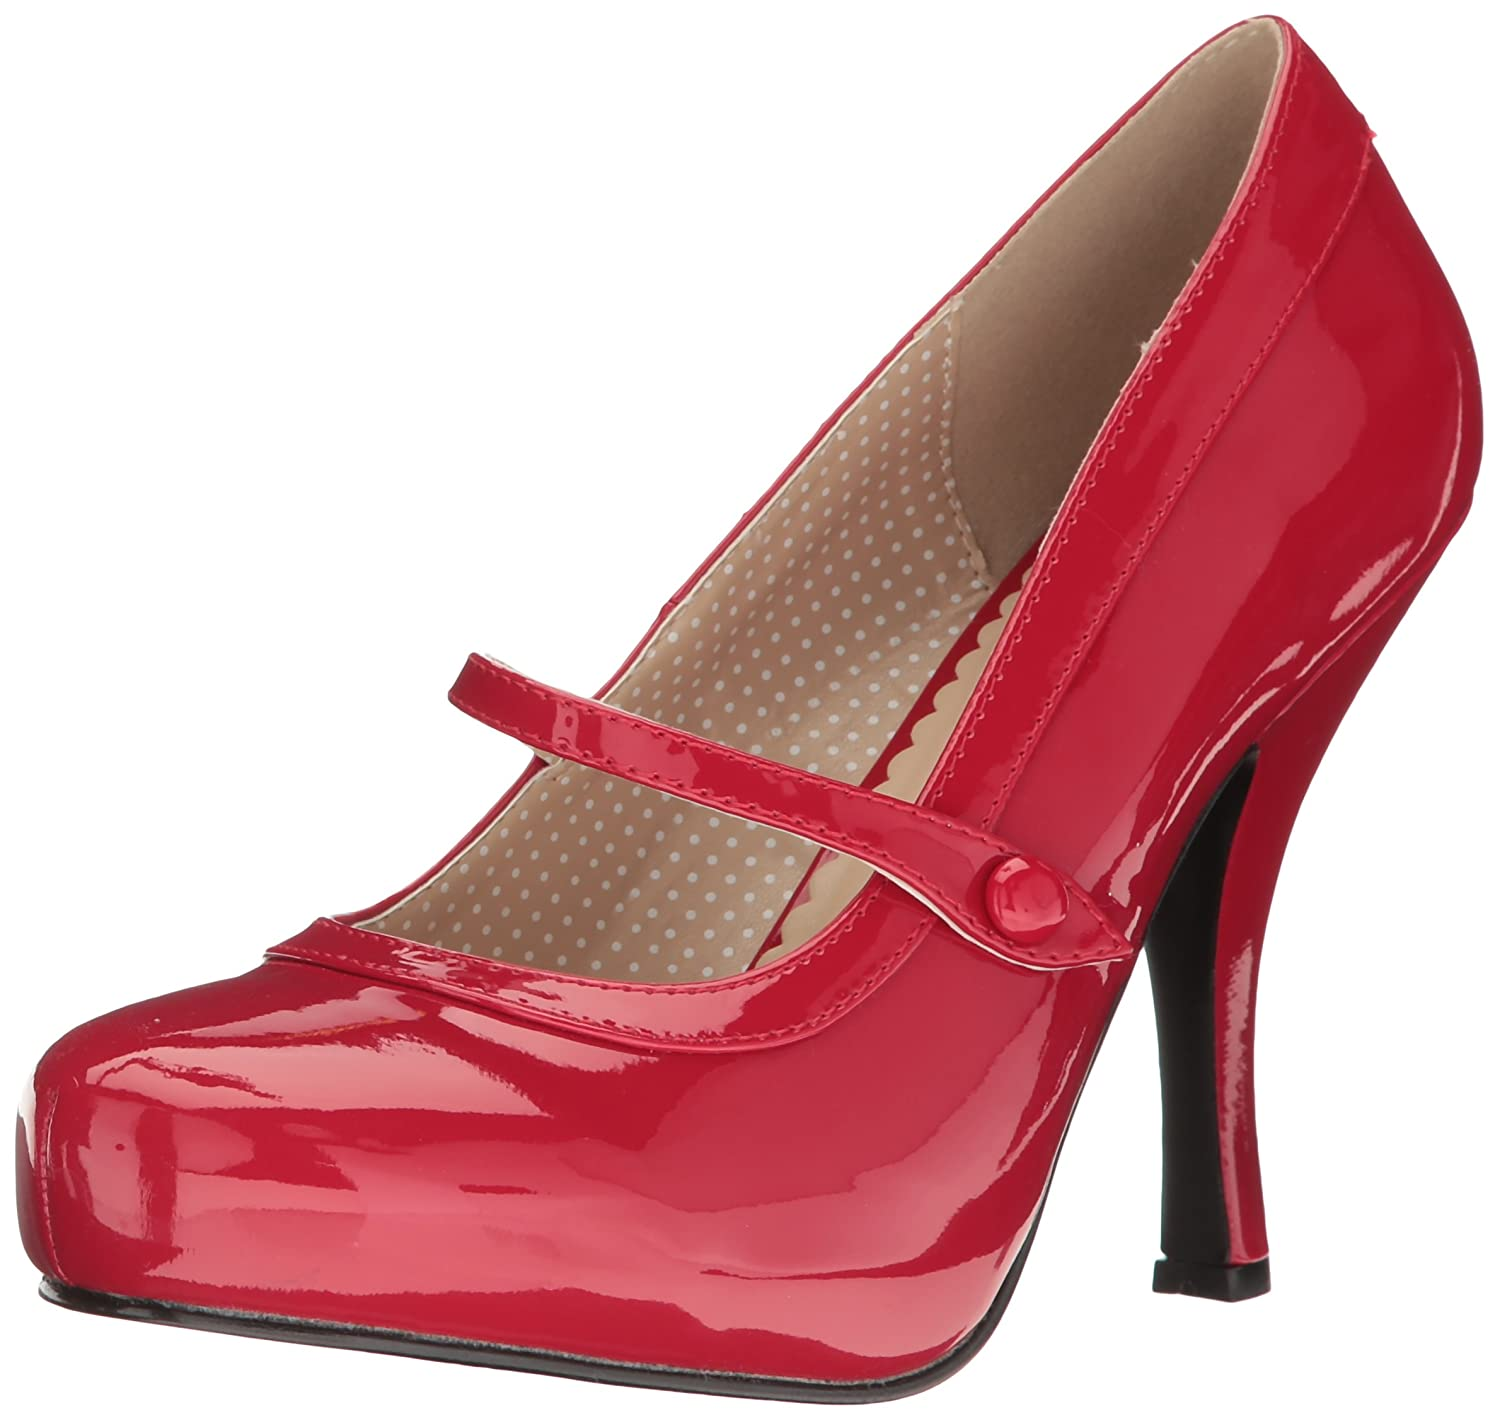 Pleaser Women's Pinup01/r Platform Pump B06XH593W2 11 B(M) US|Red Patent